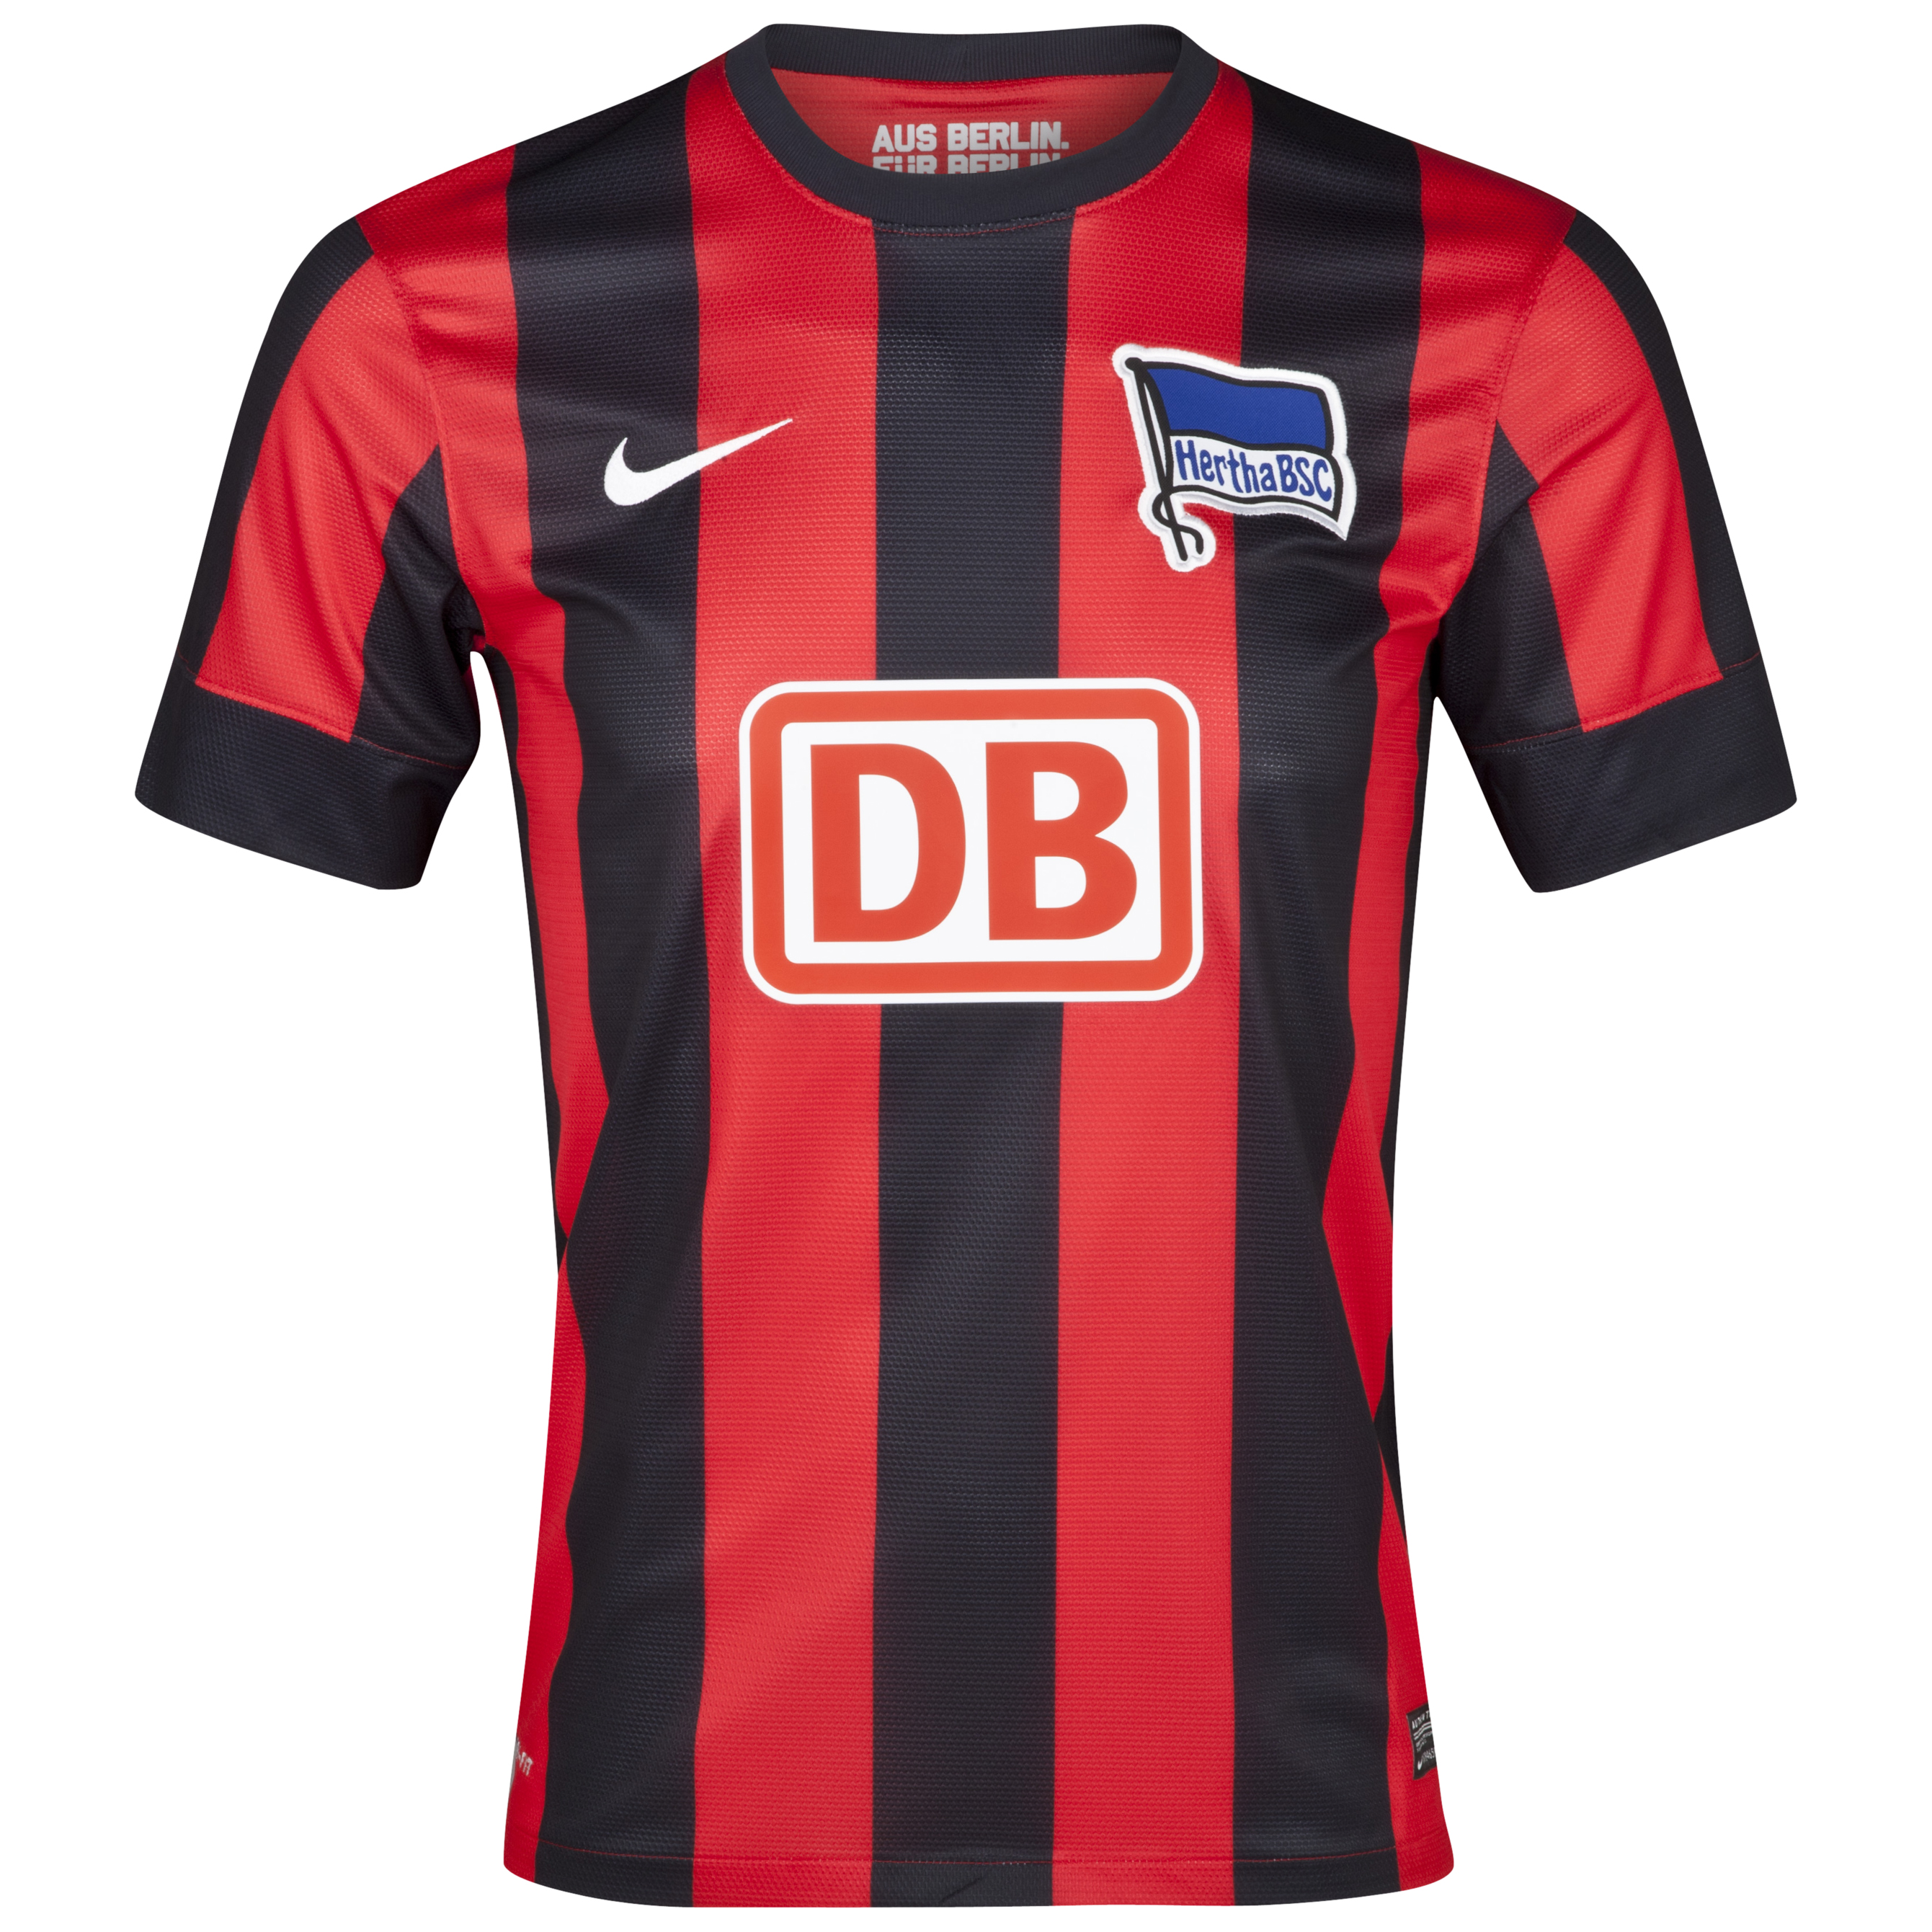 Hertha Berlin 2012/13 Away Shirt - Challenge Red/Black/Football White